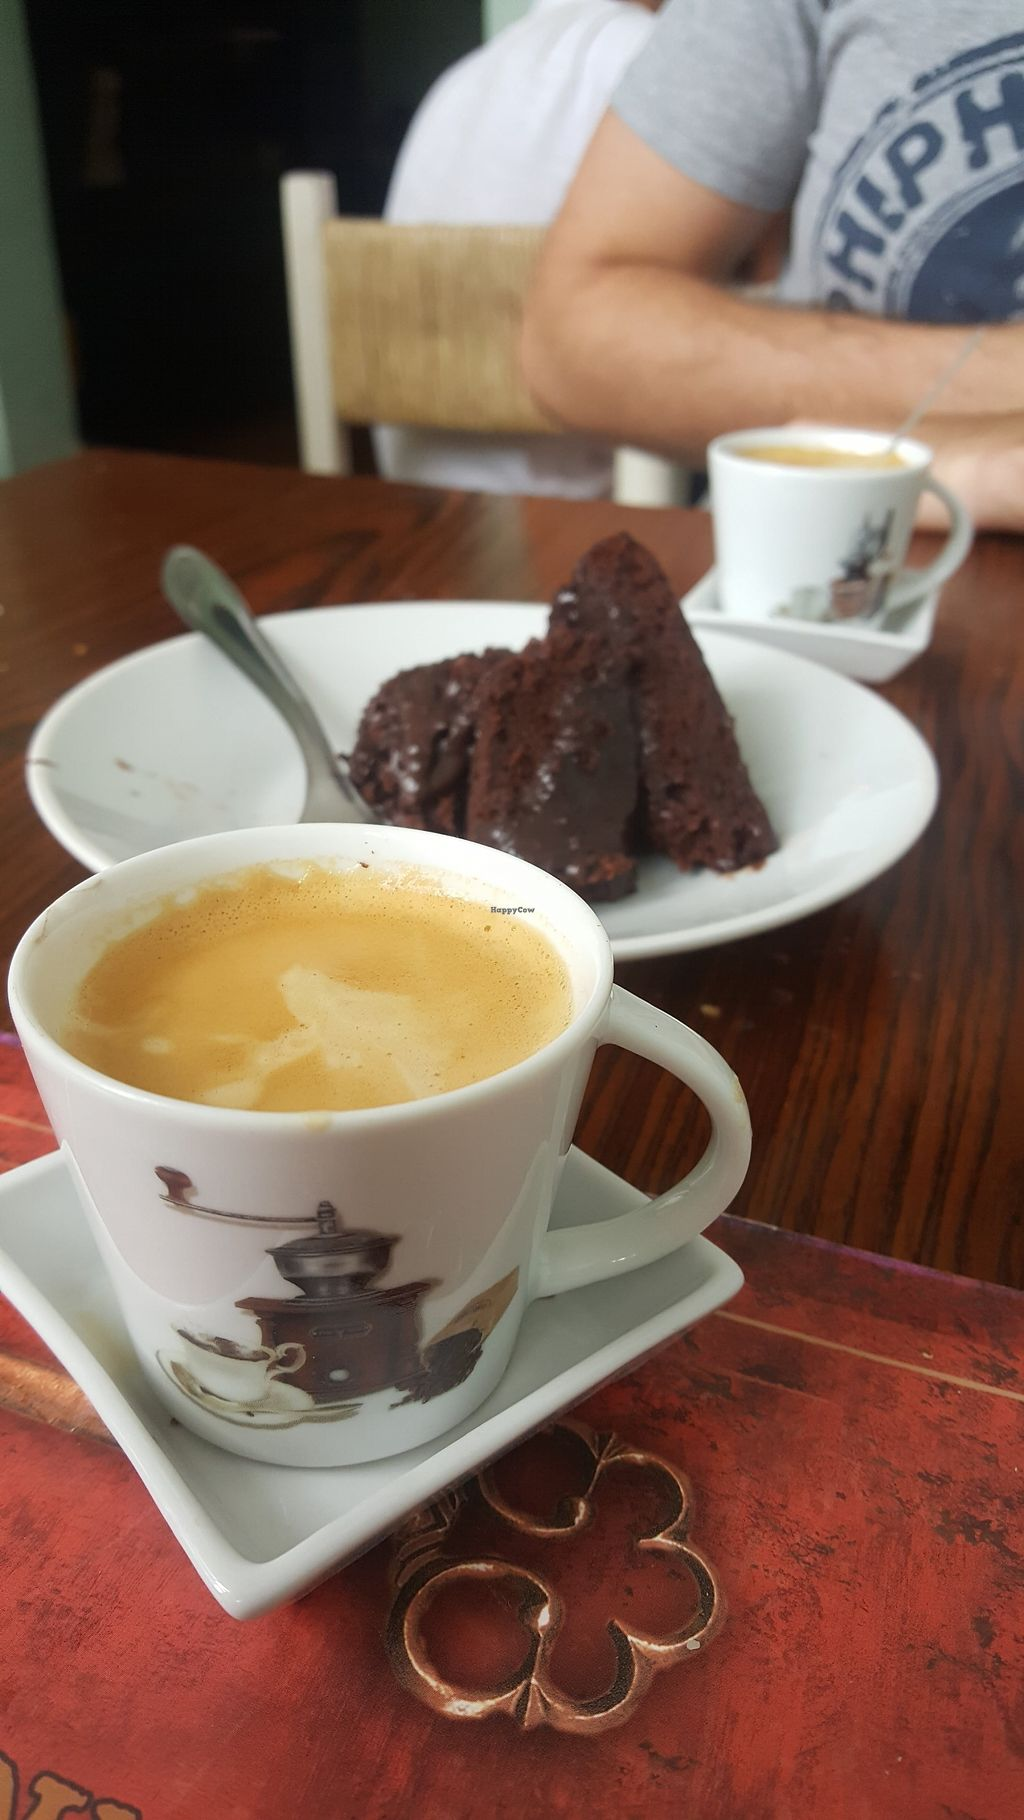 """Photo of Asseama - Franca Pinto  by <a href=""""/members/profile/sarahssoares"""">sarahssoares</a> <br/>Chocolate cake and coffee <br/> March 8, 2018  - <a href='/contact/abuse/image/90129/368175'>Report</a>"""